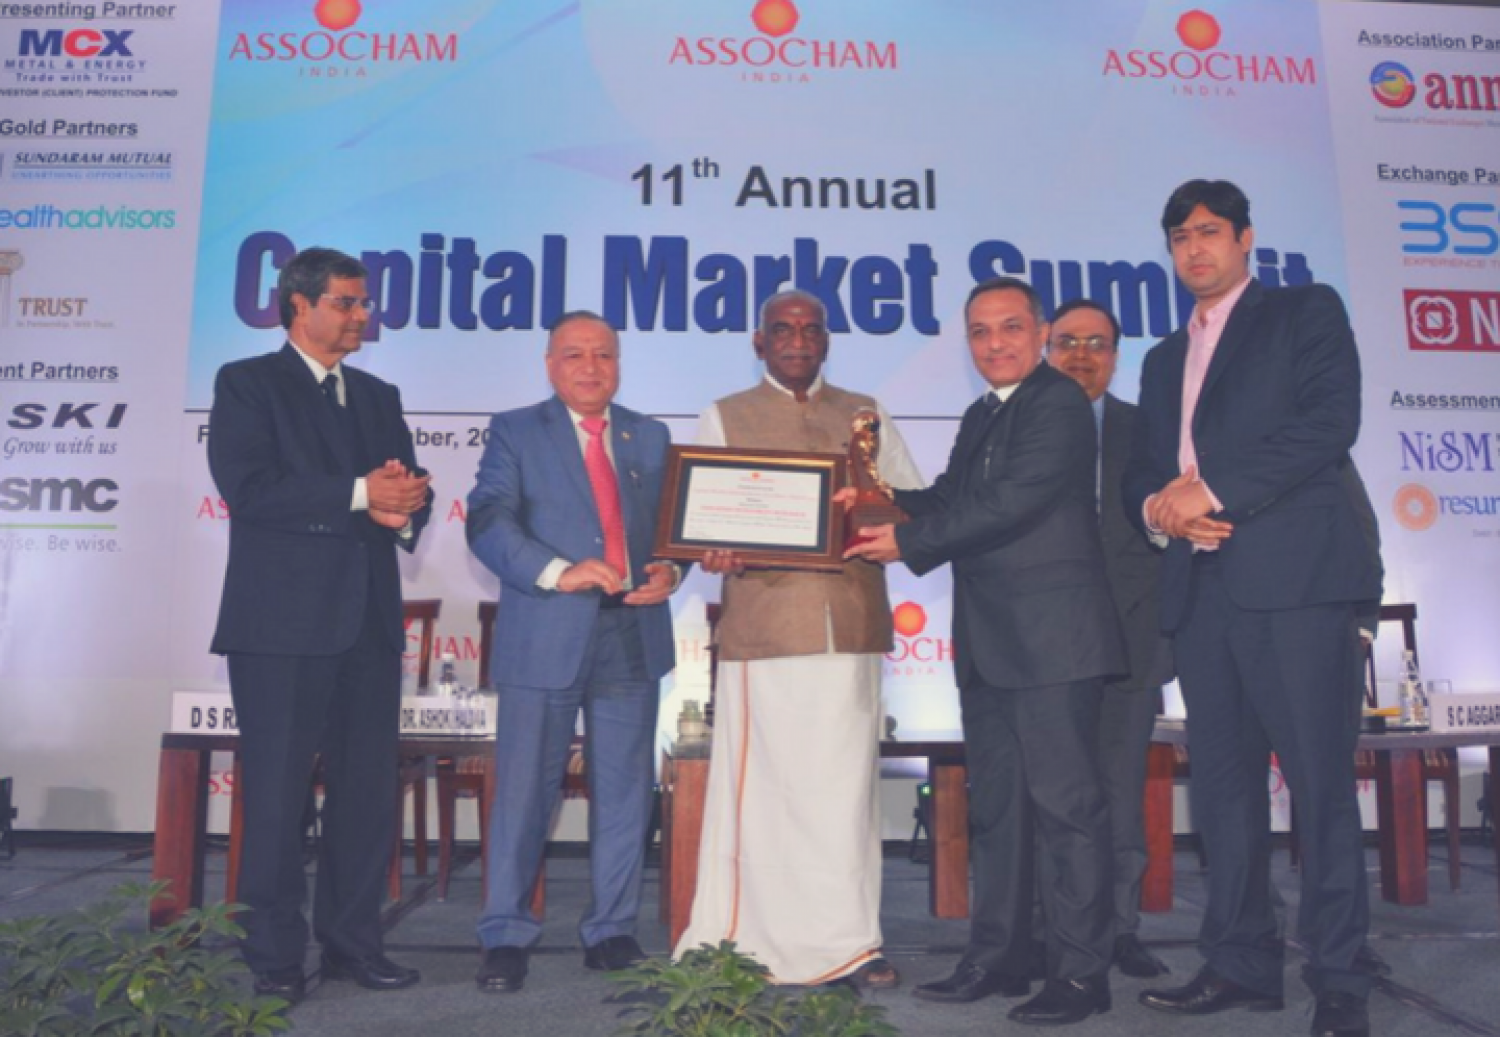 Edelweiss Investment Research Bags the Prestigious ASSOCHAM Award Infographic